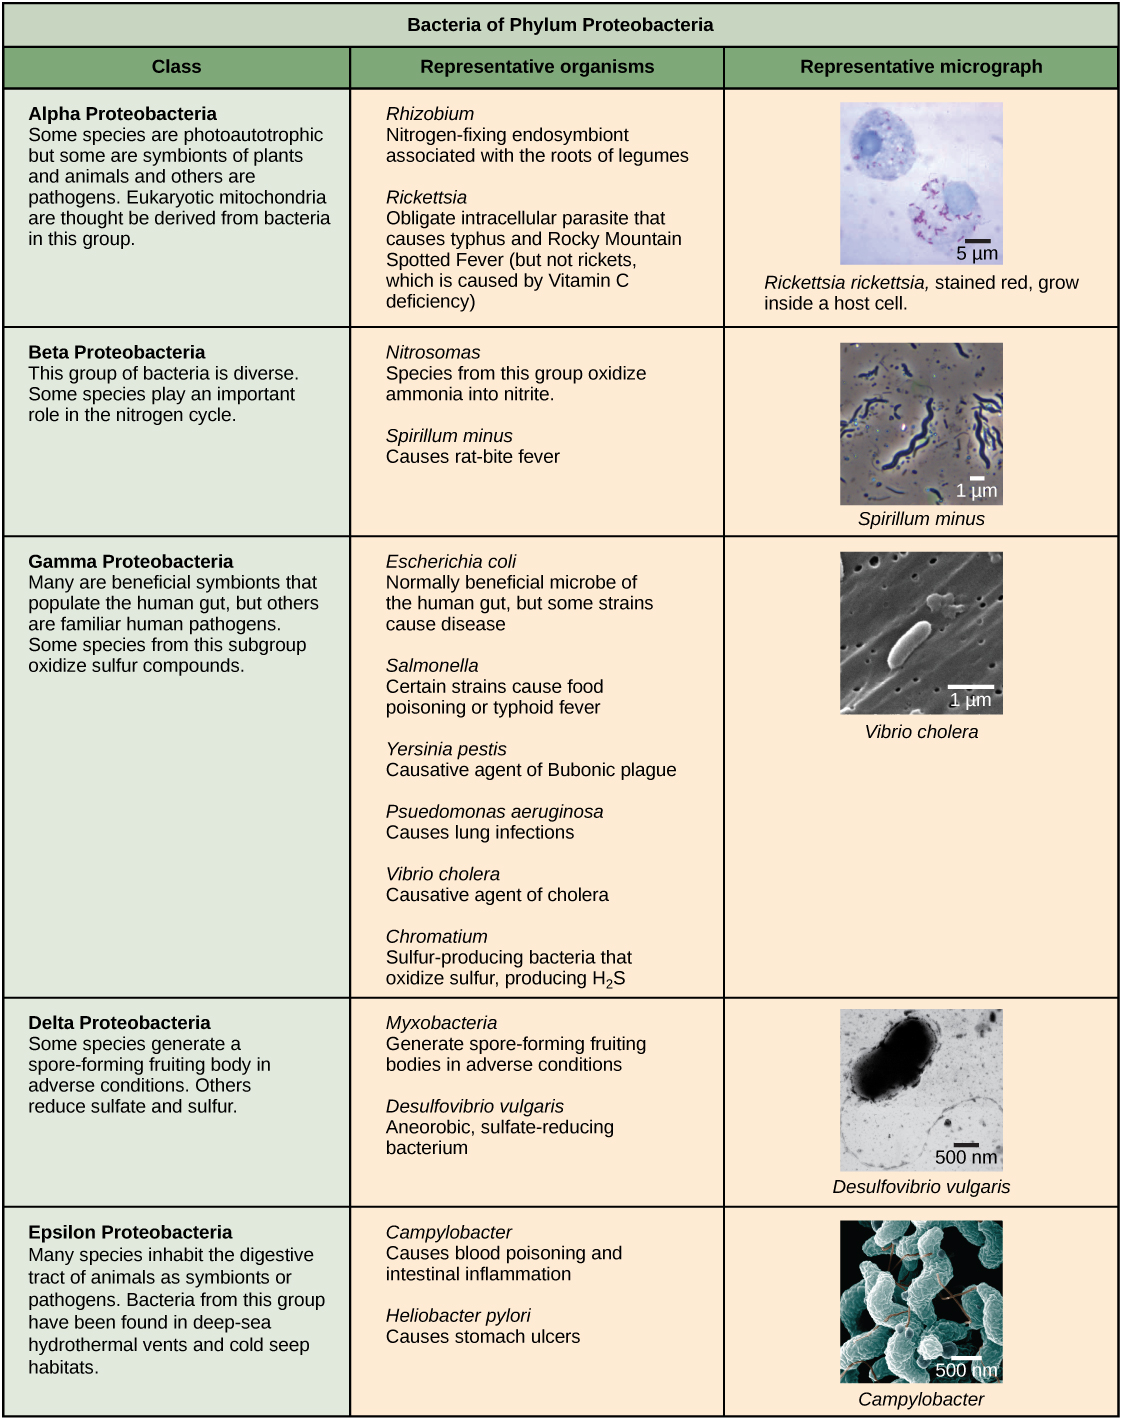 Structure Of Prokaryotes Biology Ii Prokaryotic Cell Diagram Chapter 11 Cells Introduction To Characteristics The Five Phyla Bacteria Are Described First Phylum Is Proteobacteria